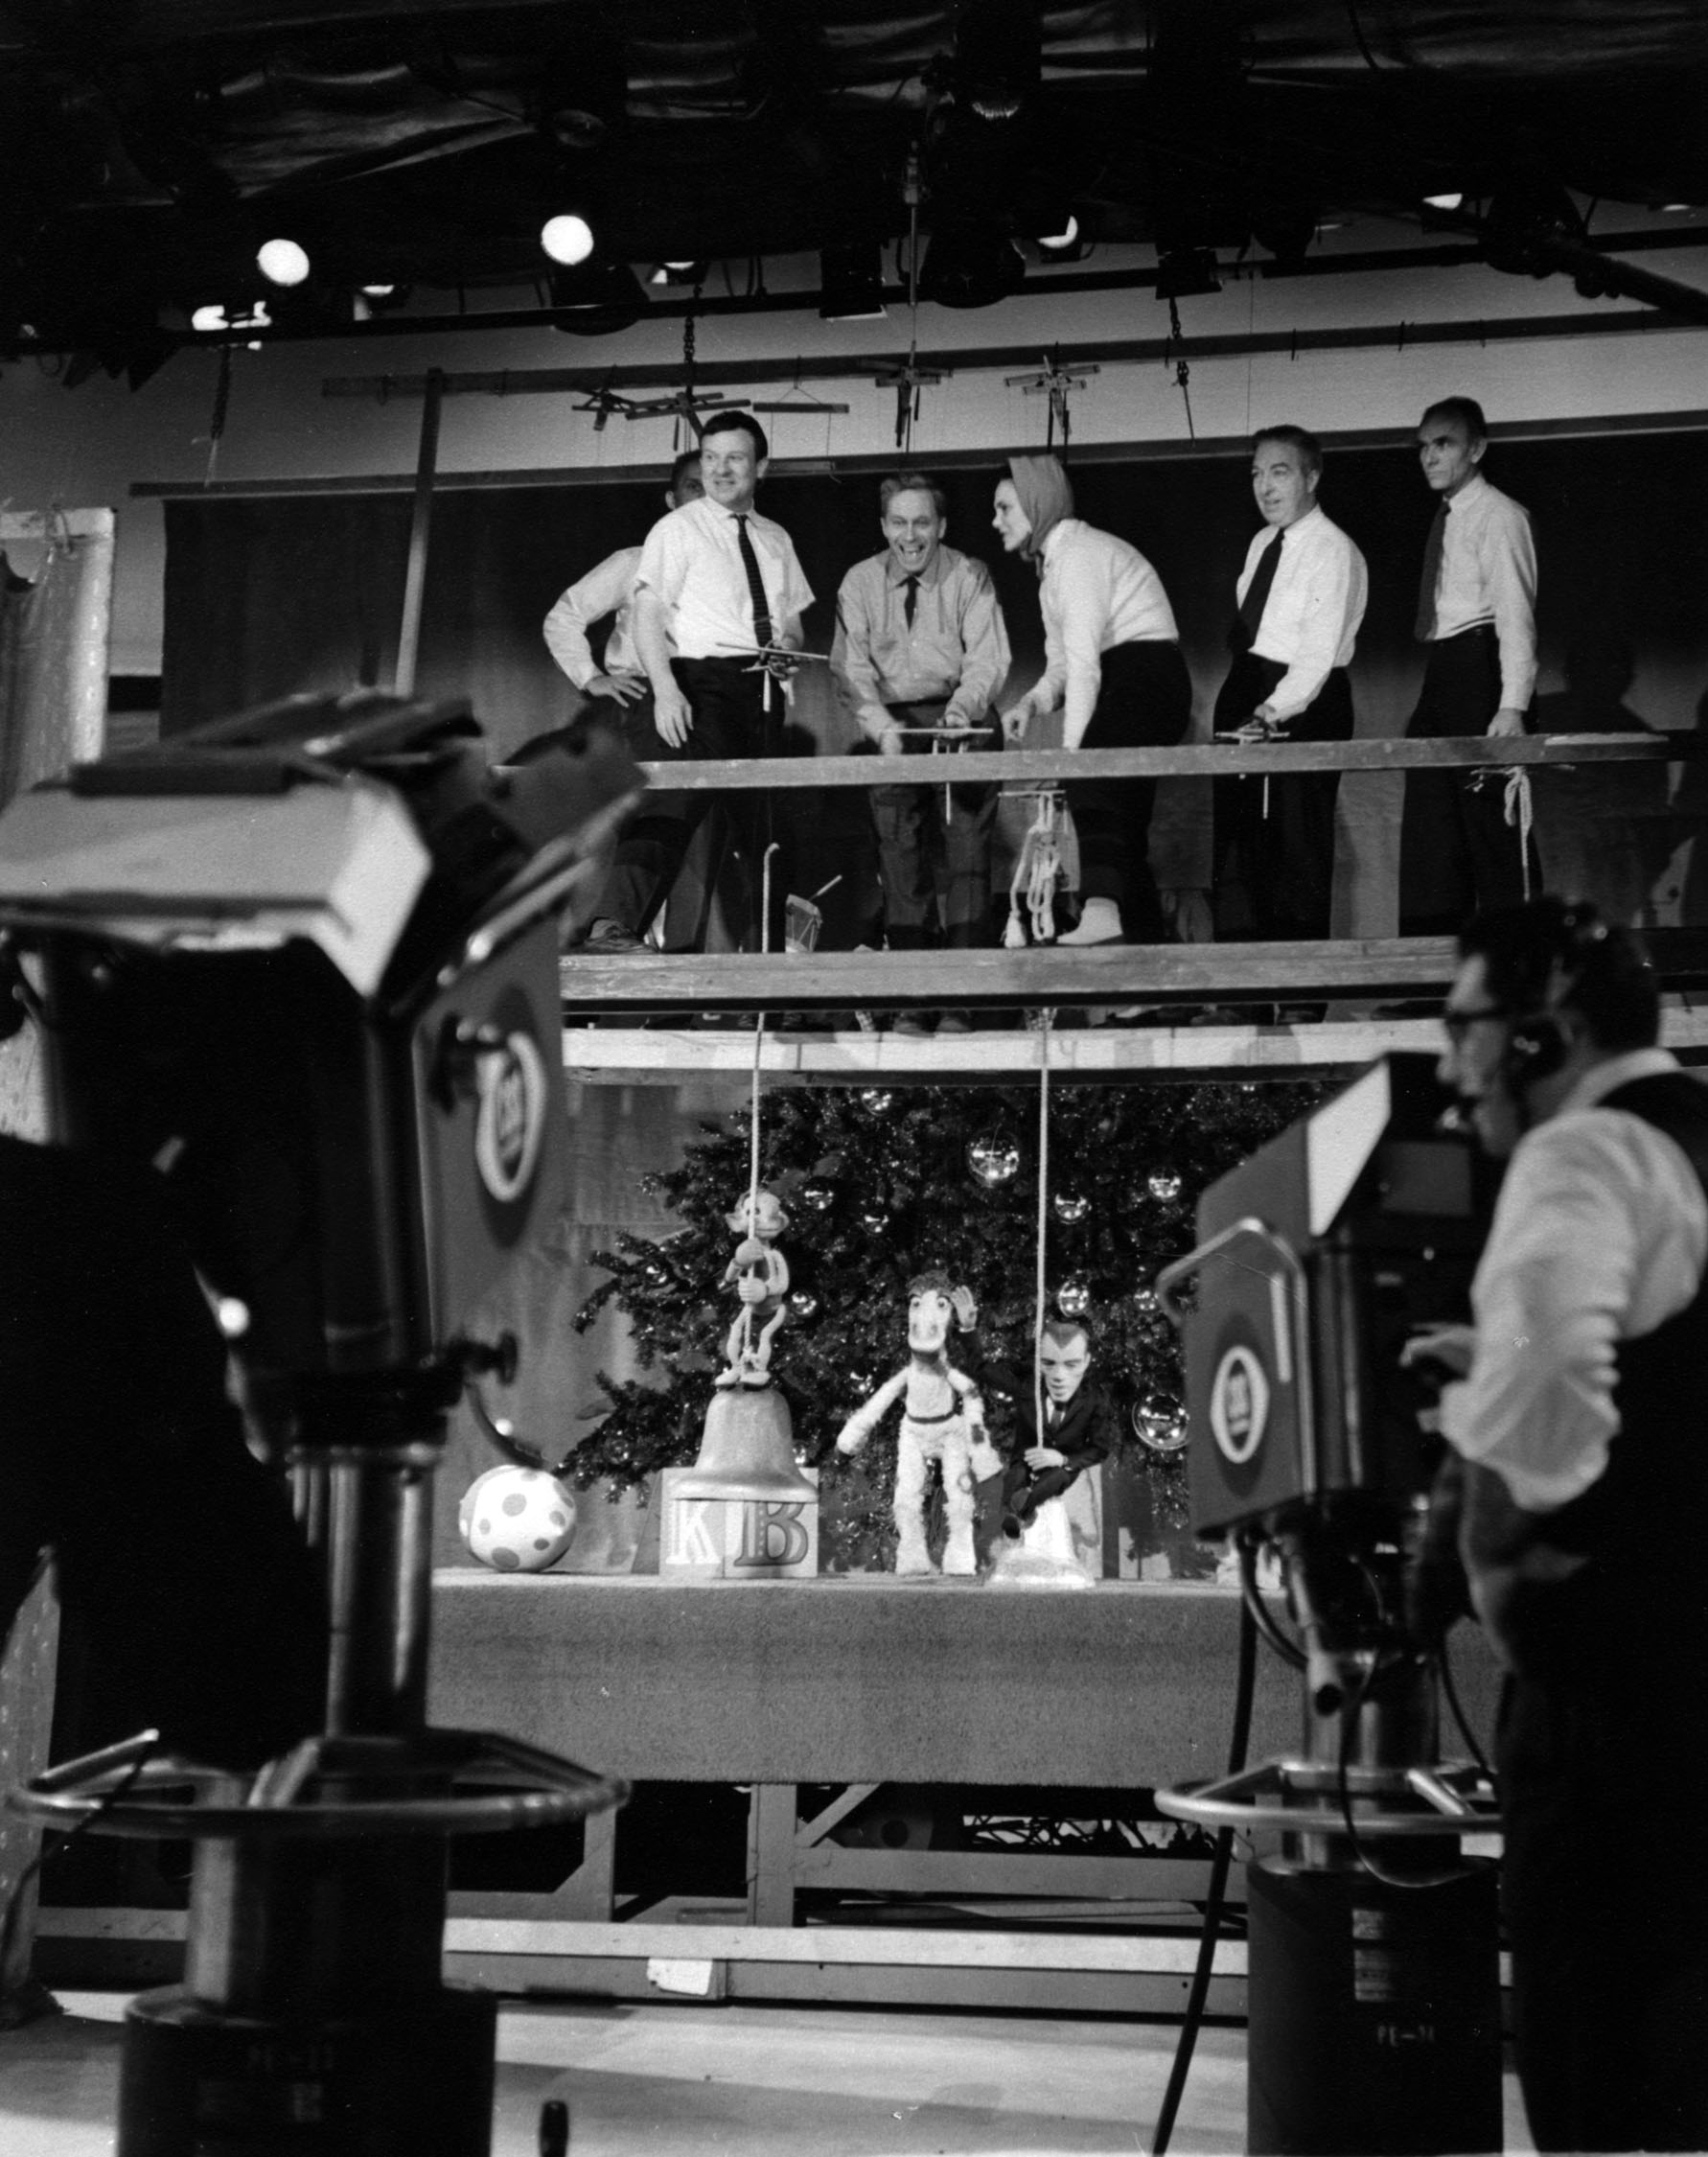 The Ed Sullivan Show puppet stage